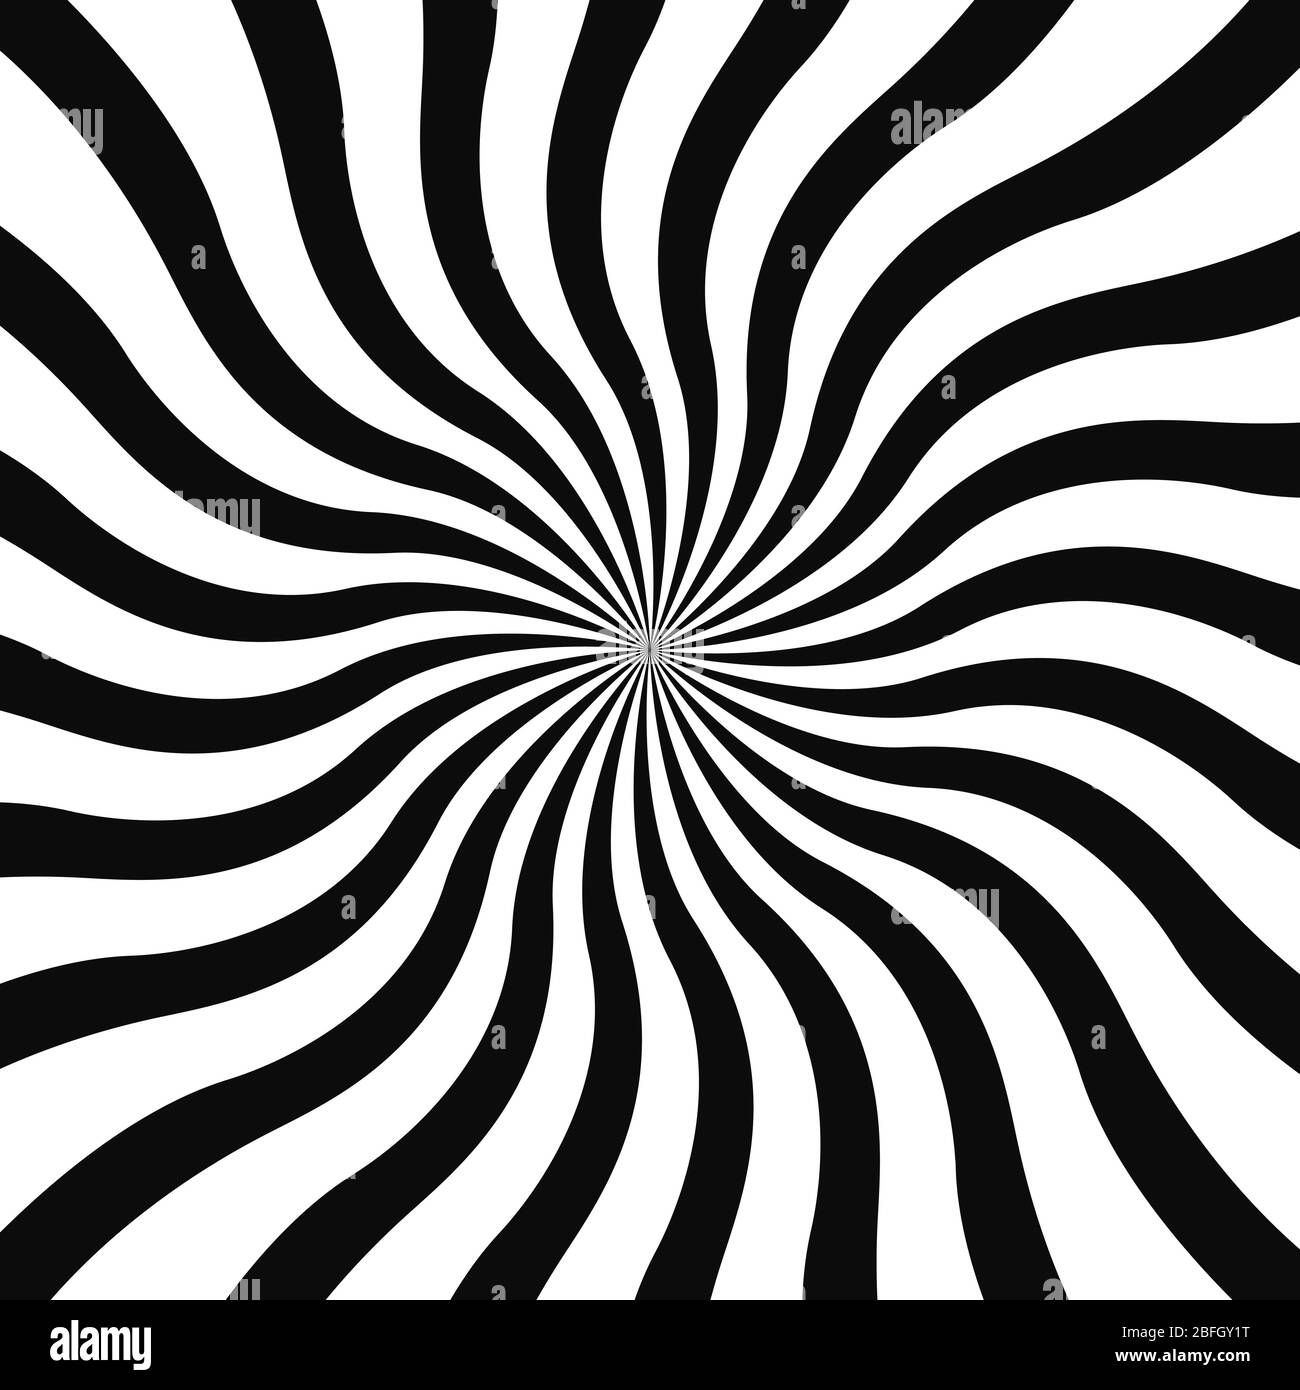 Abstract Optical Illusion Background Vector Design Psychedelic Striped Black And White Backdrop Hypnotic Pattern White And Black Beam Style Background Vector Stock Vector Image Art Alamy